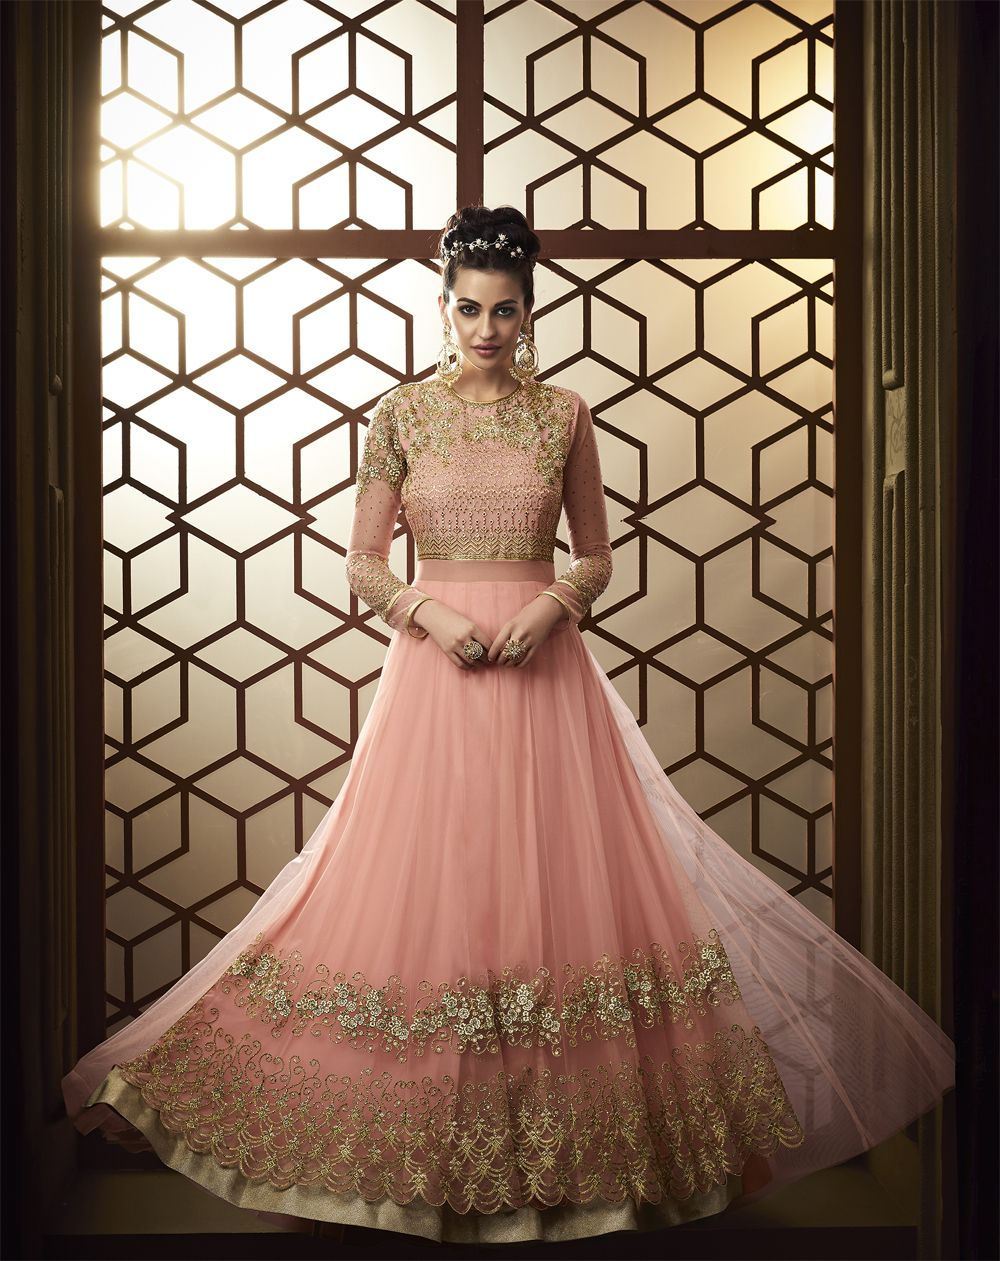 c072a878ab Traditional Indian wear needs styling and the right layering. The most  popular traditional outfits include lehenga choli combos, salwar kameez,  kurta ...